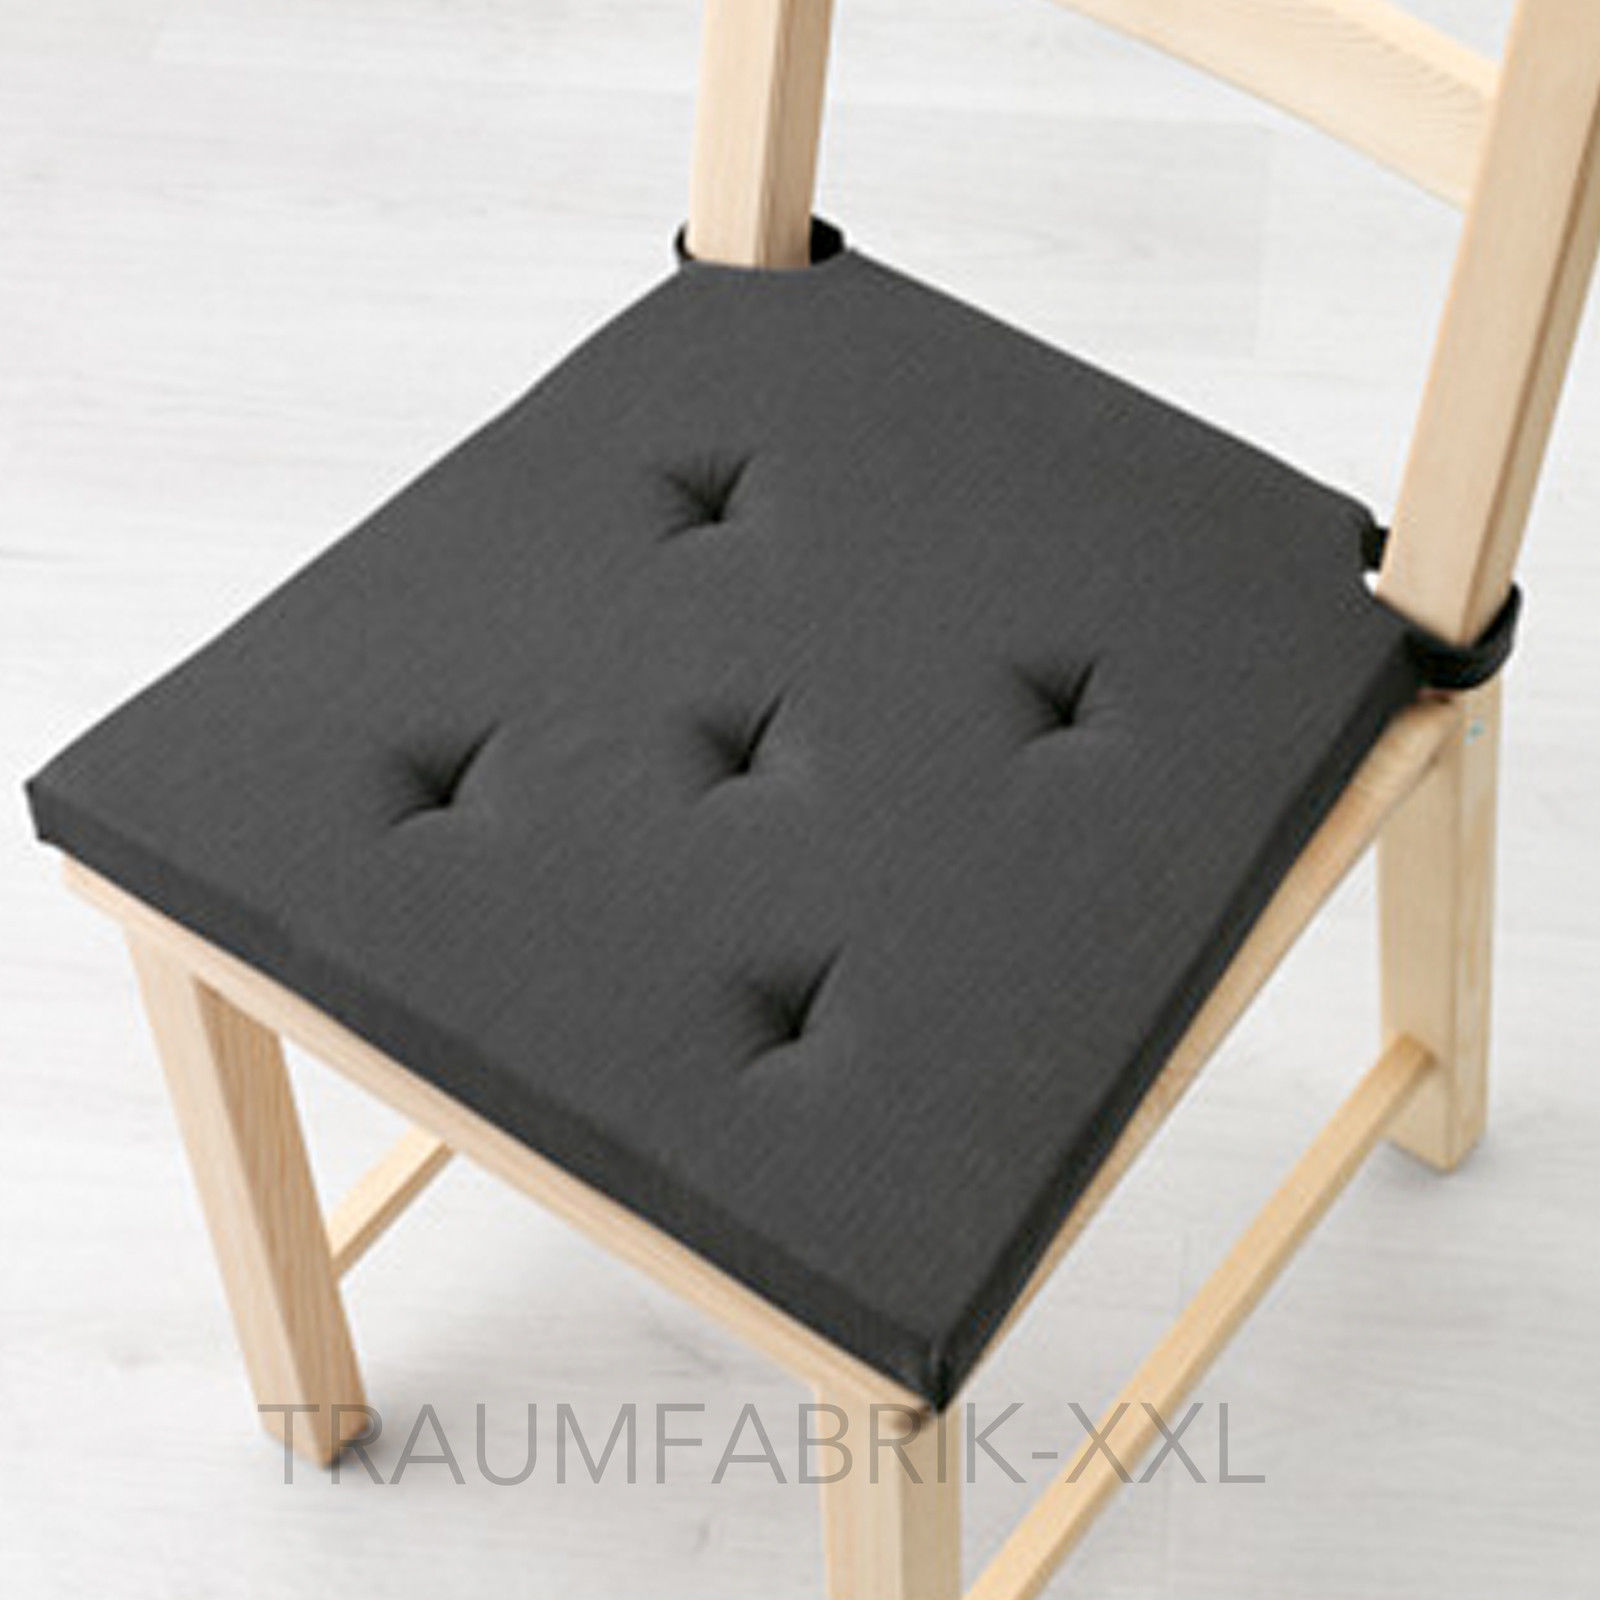 ikea stuhlkissen ikea sitzkissen kissen stuhlkissen 40x40 cm amalia neu ebay ikea stuhlkissen. Black Bedroom Furniture Sets. Home Design Ideas